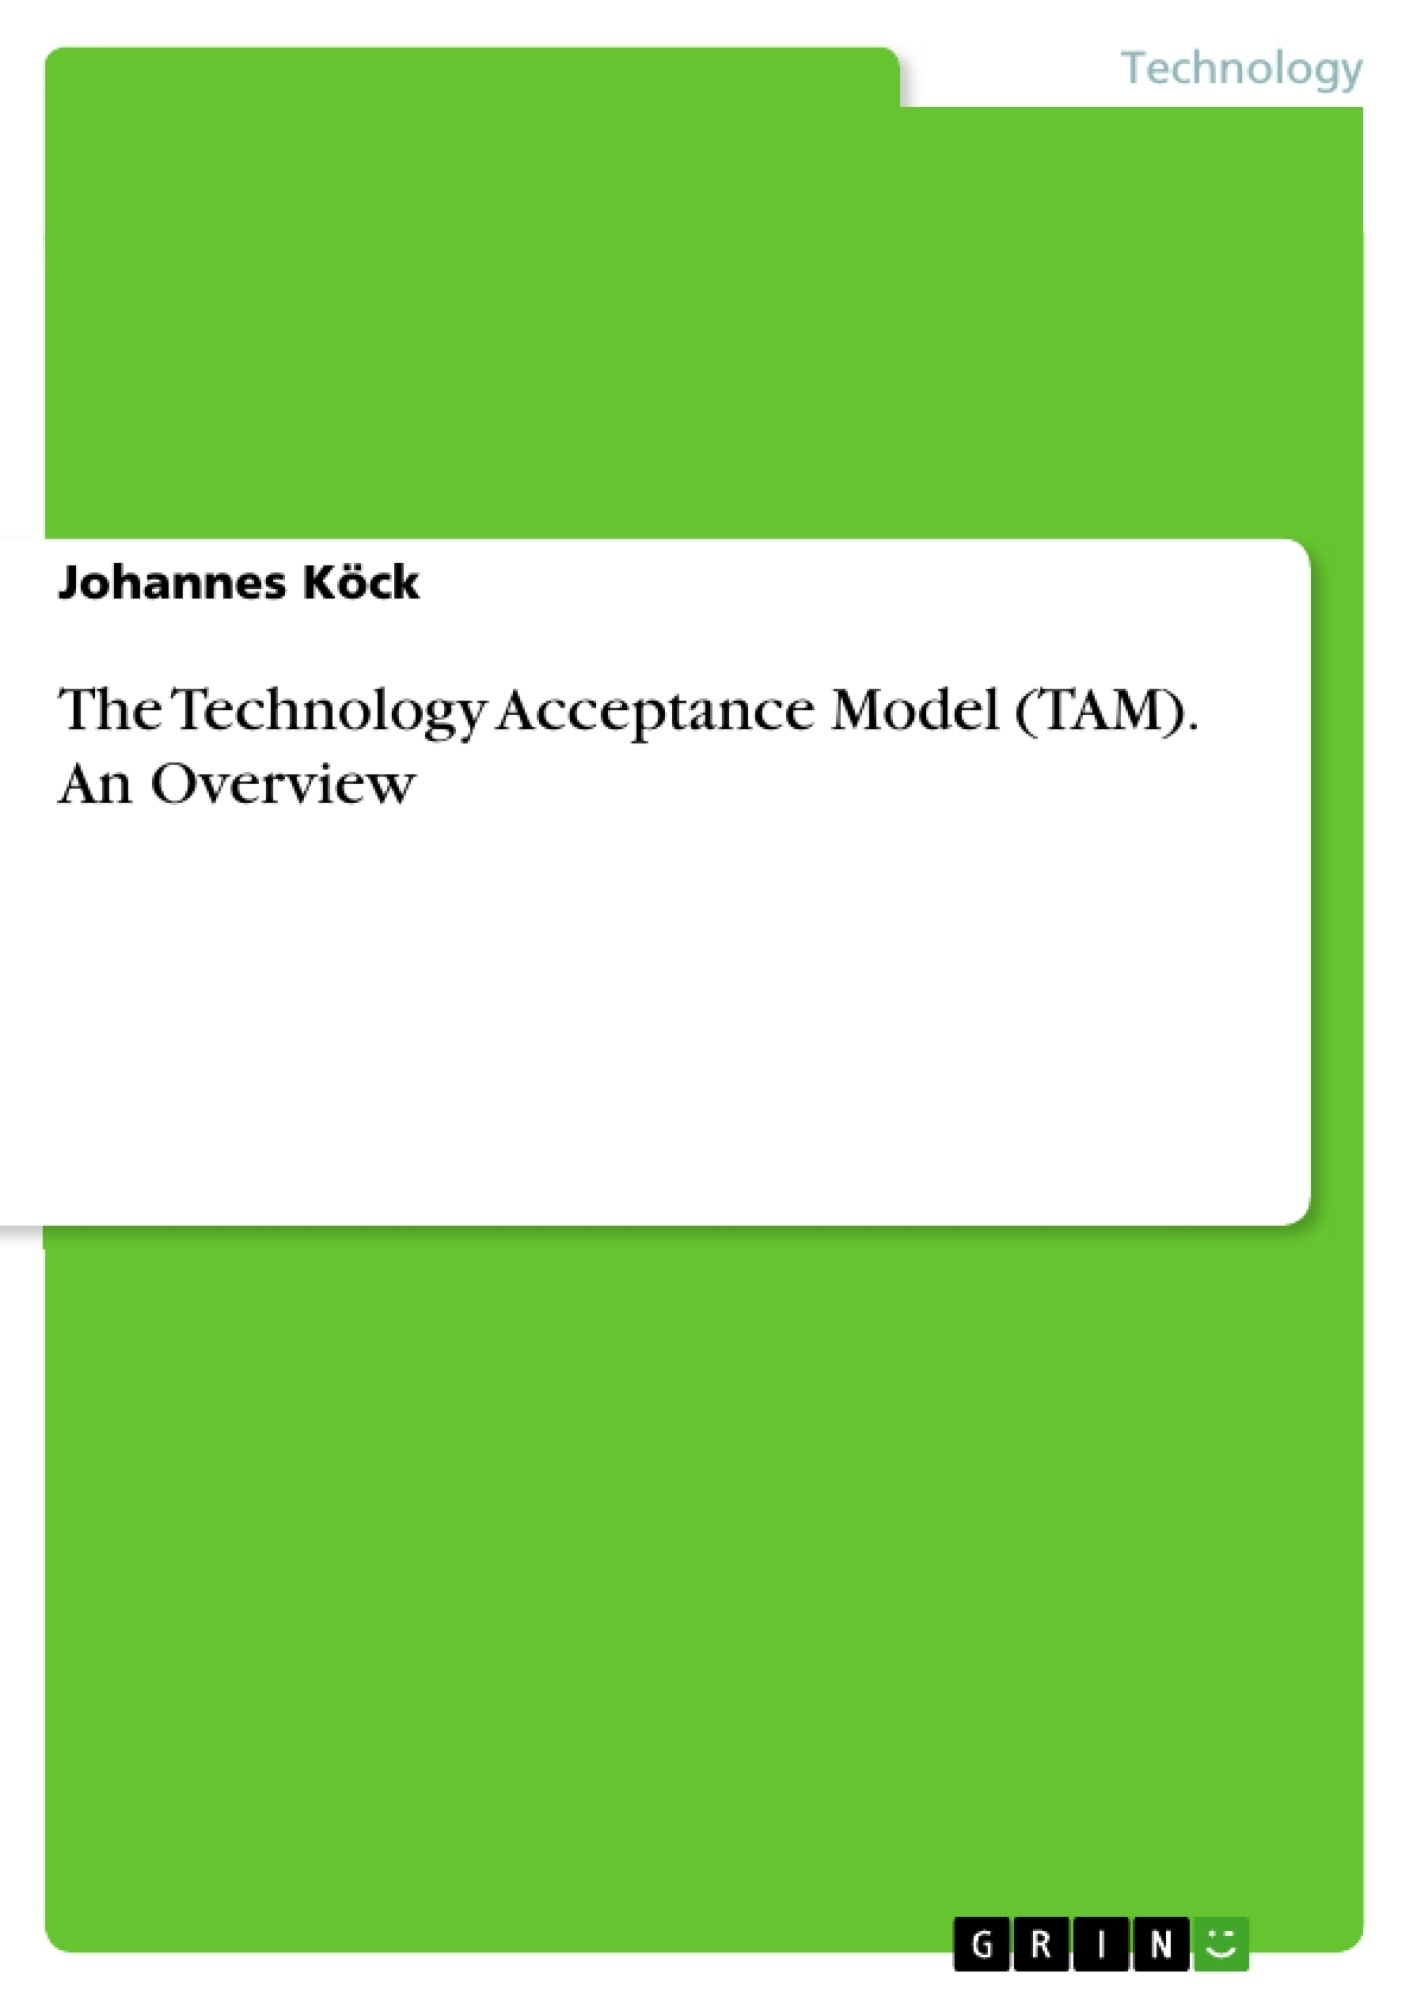 Title: The Technology Acceptance Model (TAM). An Overview